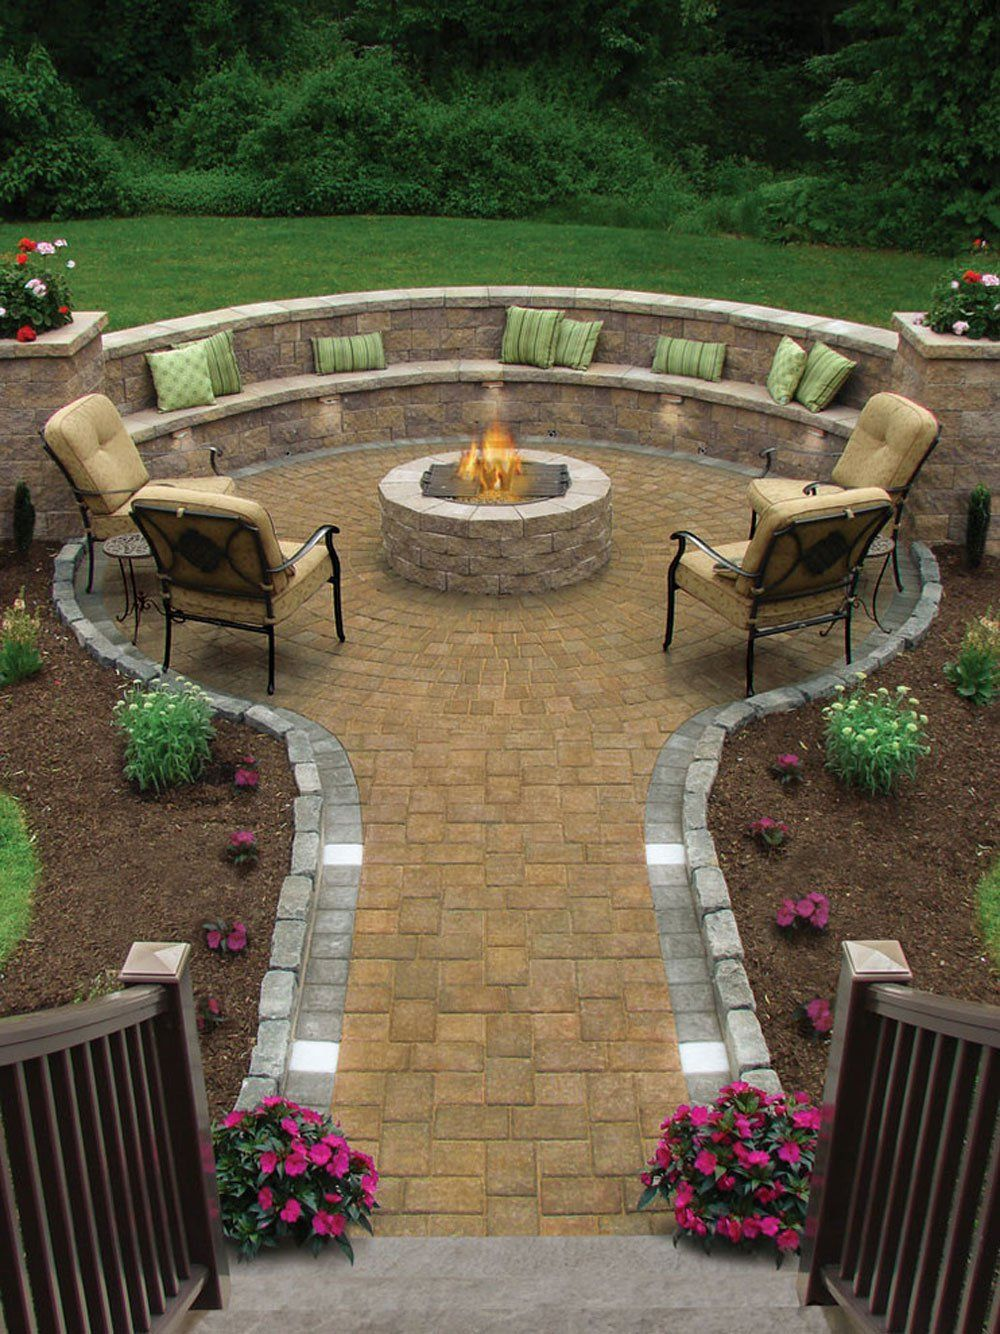 Patio Fire Pit Ideas 17 Of The Most Amazing Seating Area Around The Fire Pit Ever